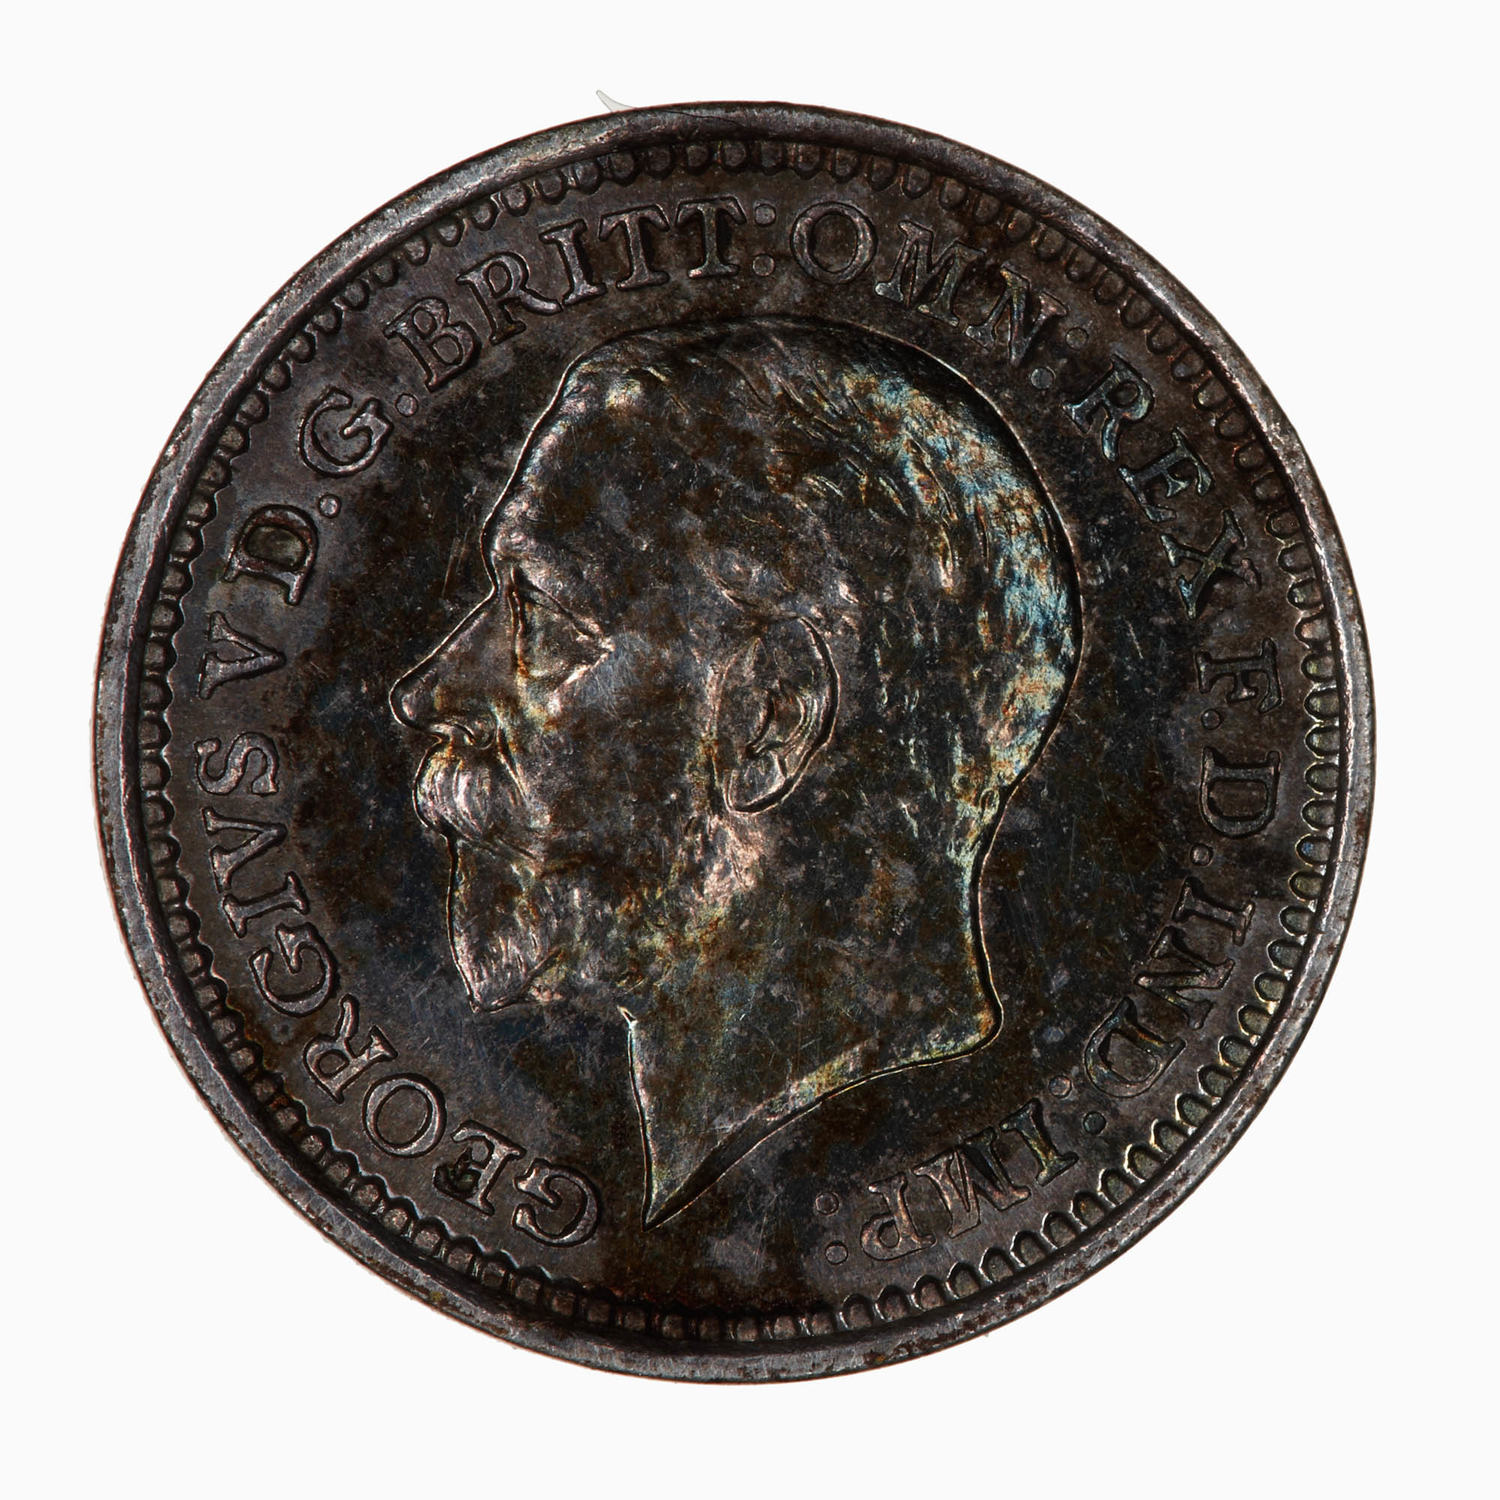 Maundy Twopence (Pre-decimal): Photo Coin - Twopence (Maundy), George V, Great Britain, 1932